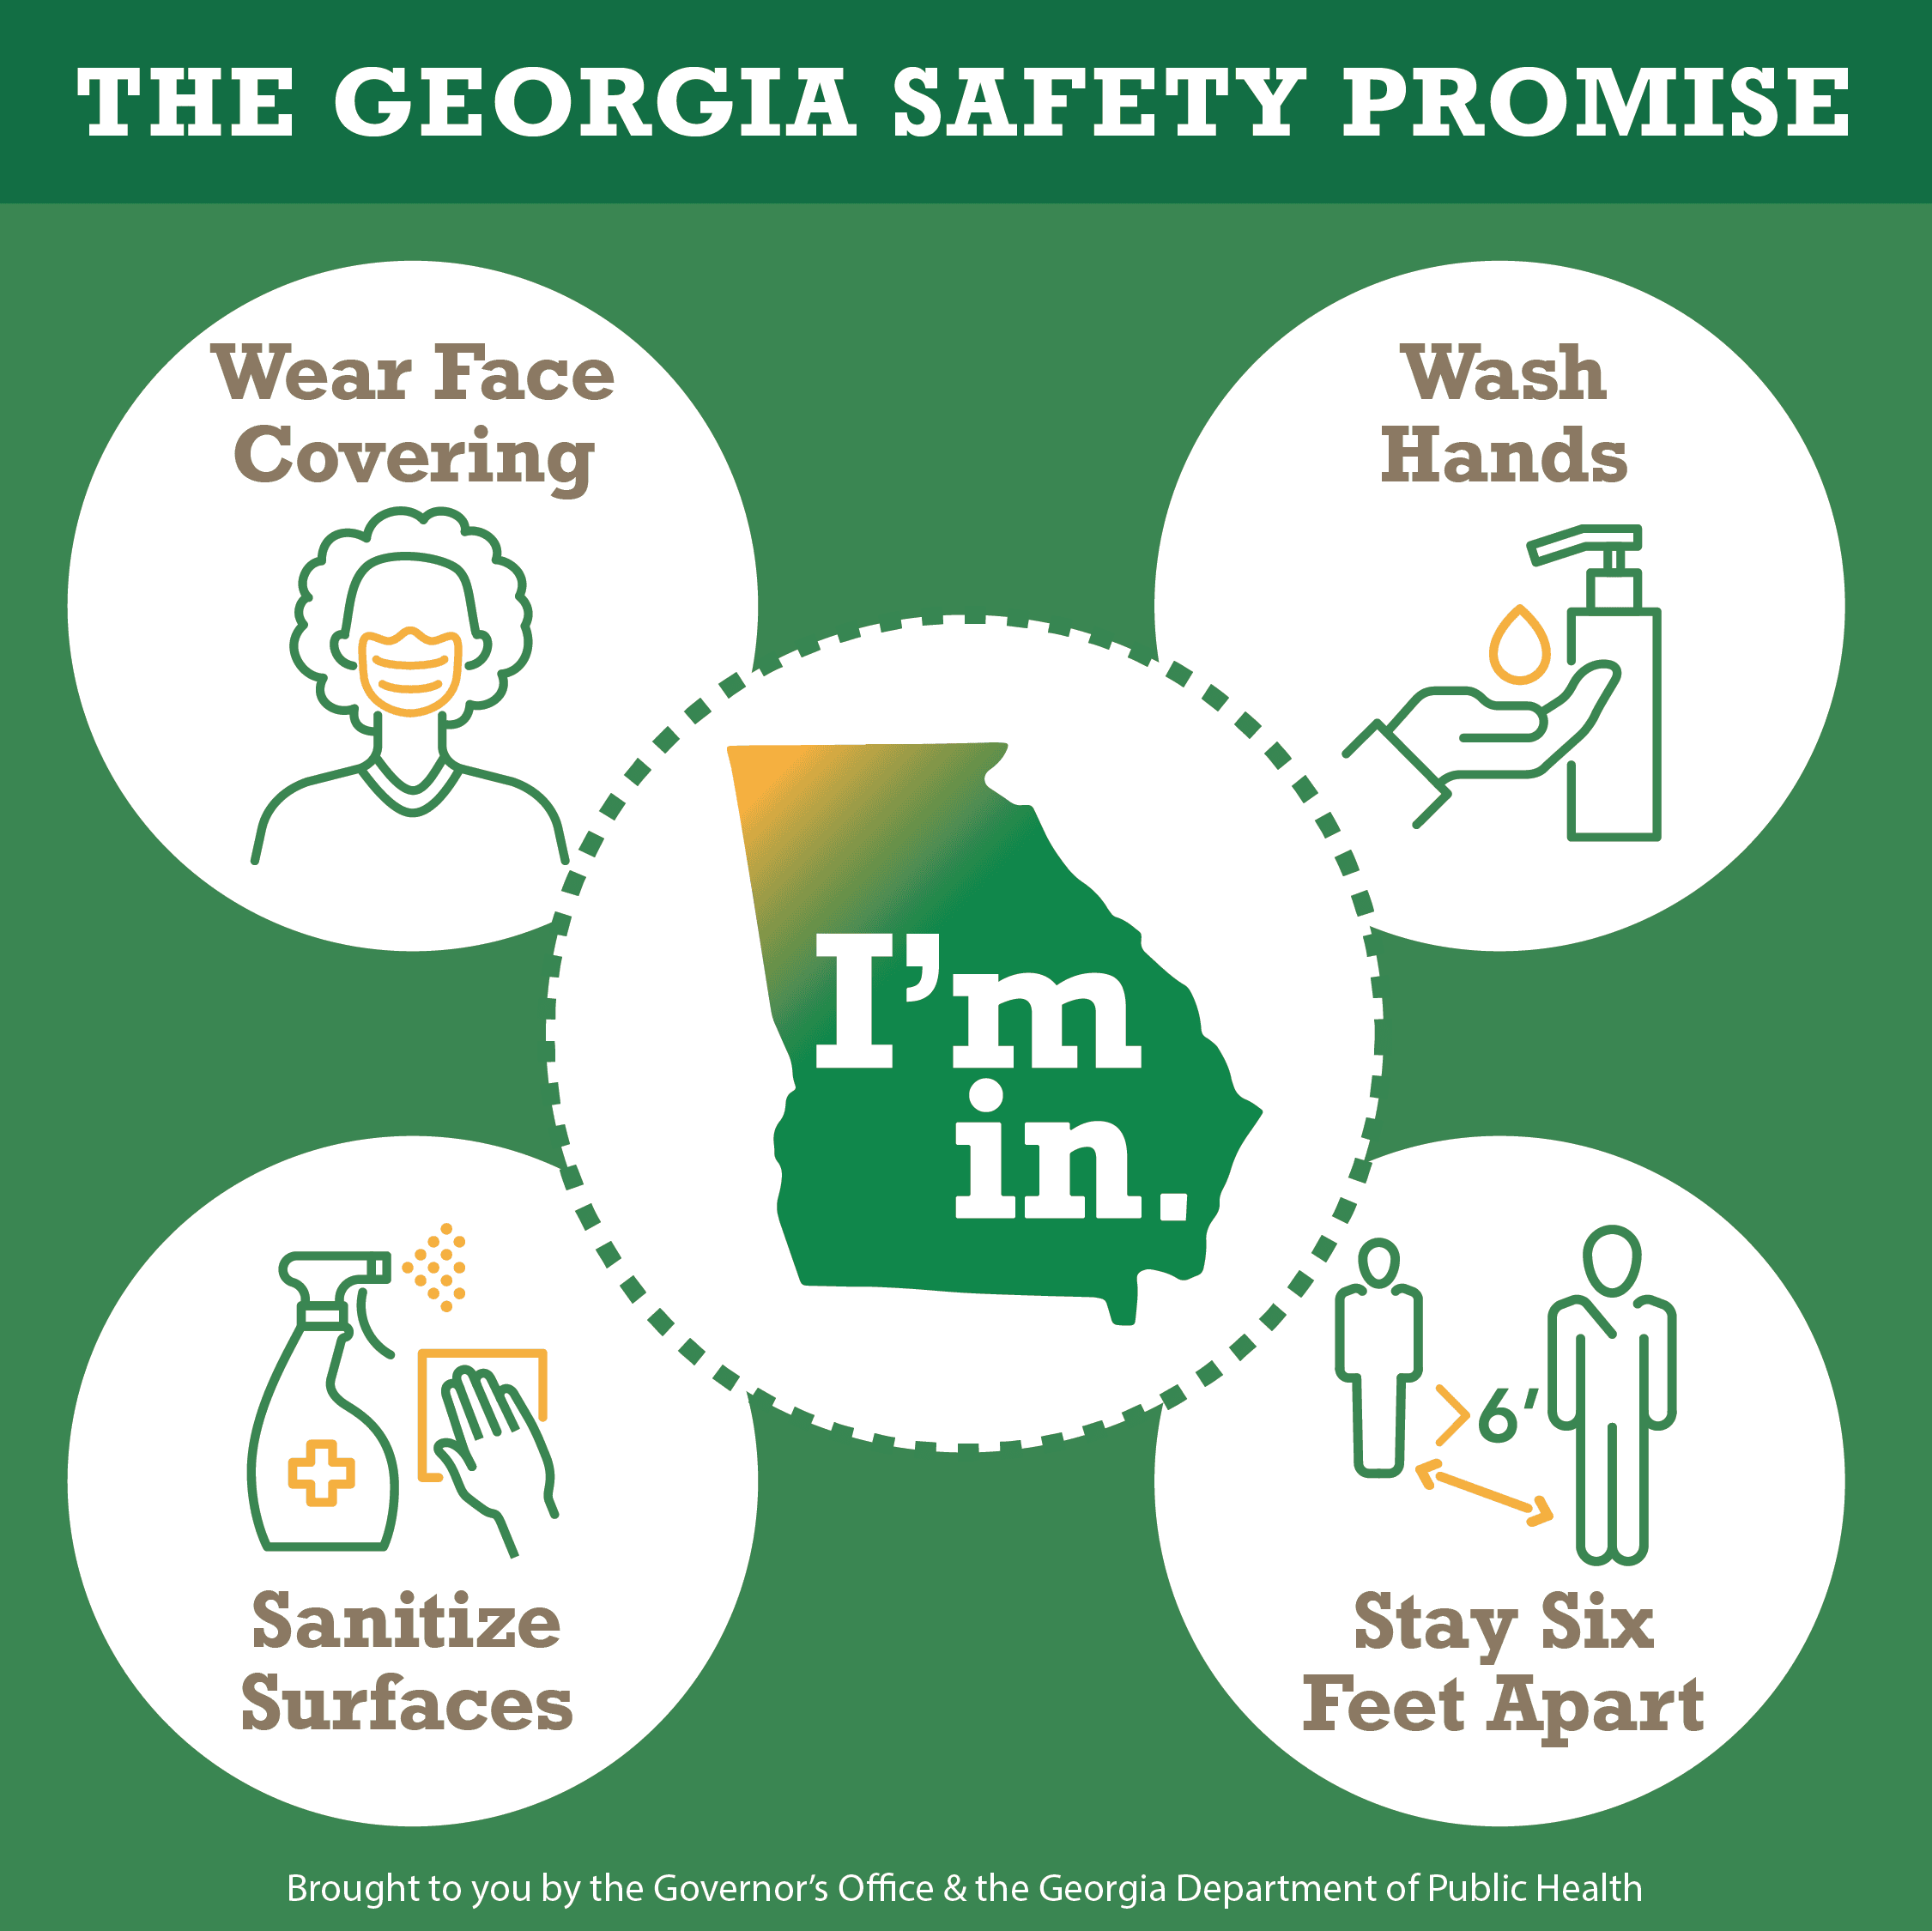 georgia_safety_promise Opens in new window